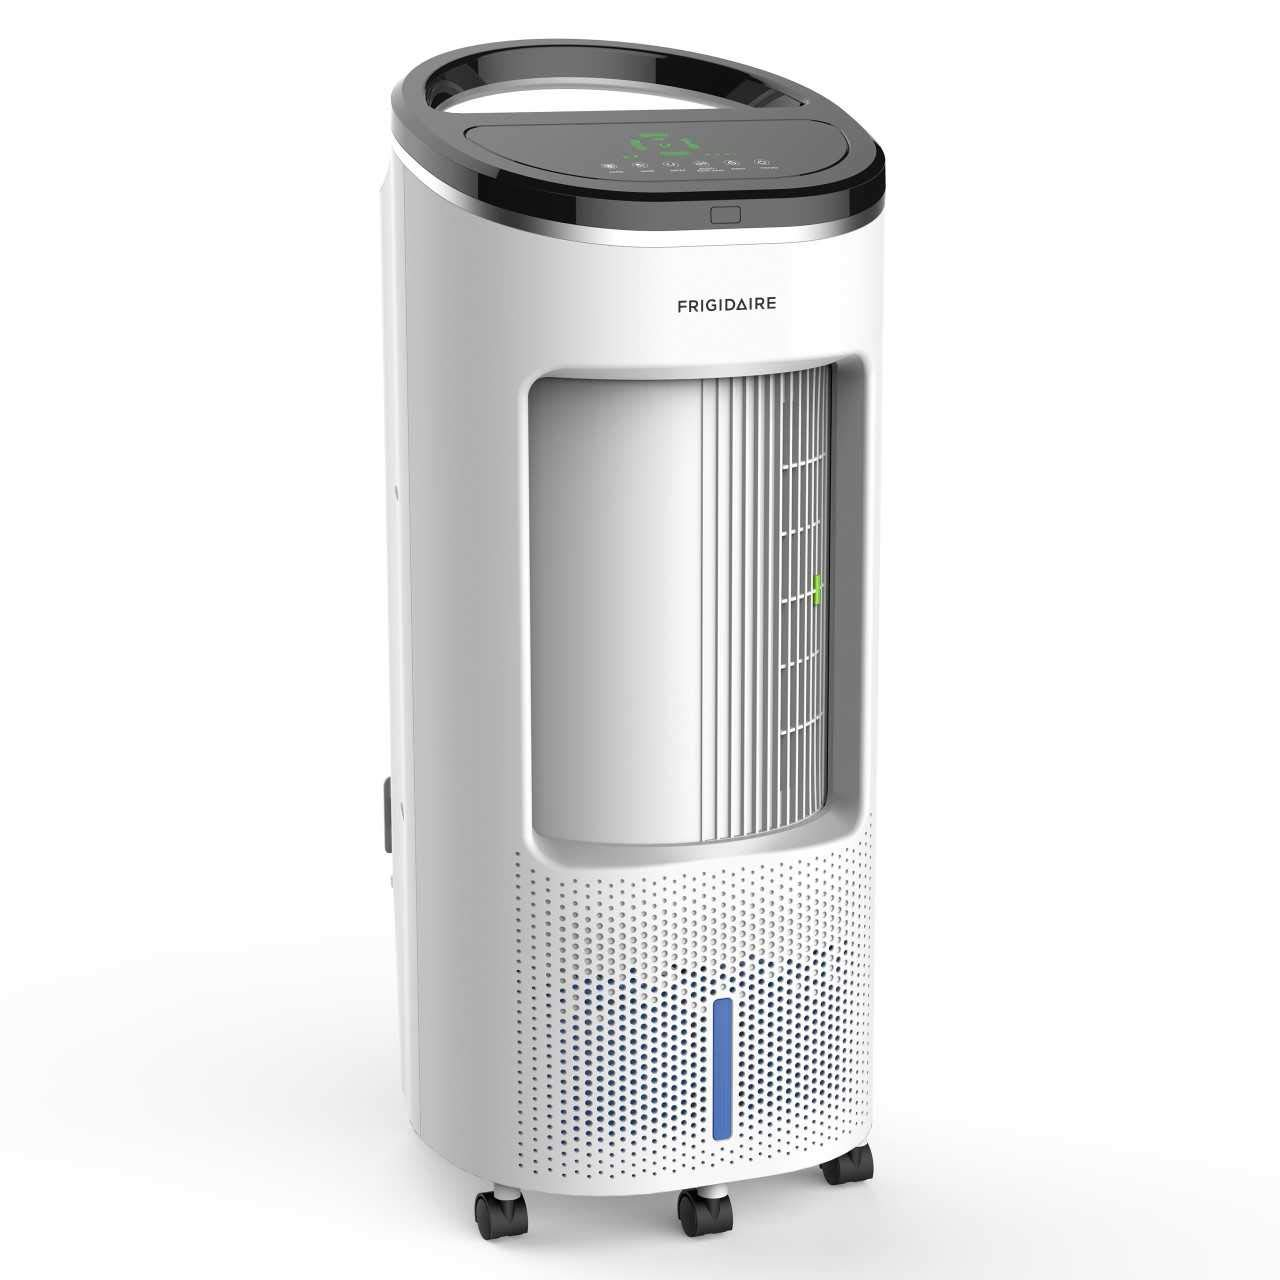 Frigidaire Portable Evaporative Air Cooler and Humidifier, Personal Indoor Space Cooler, EC200WF